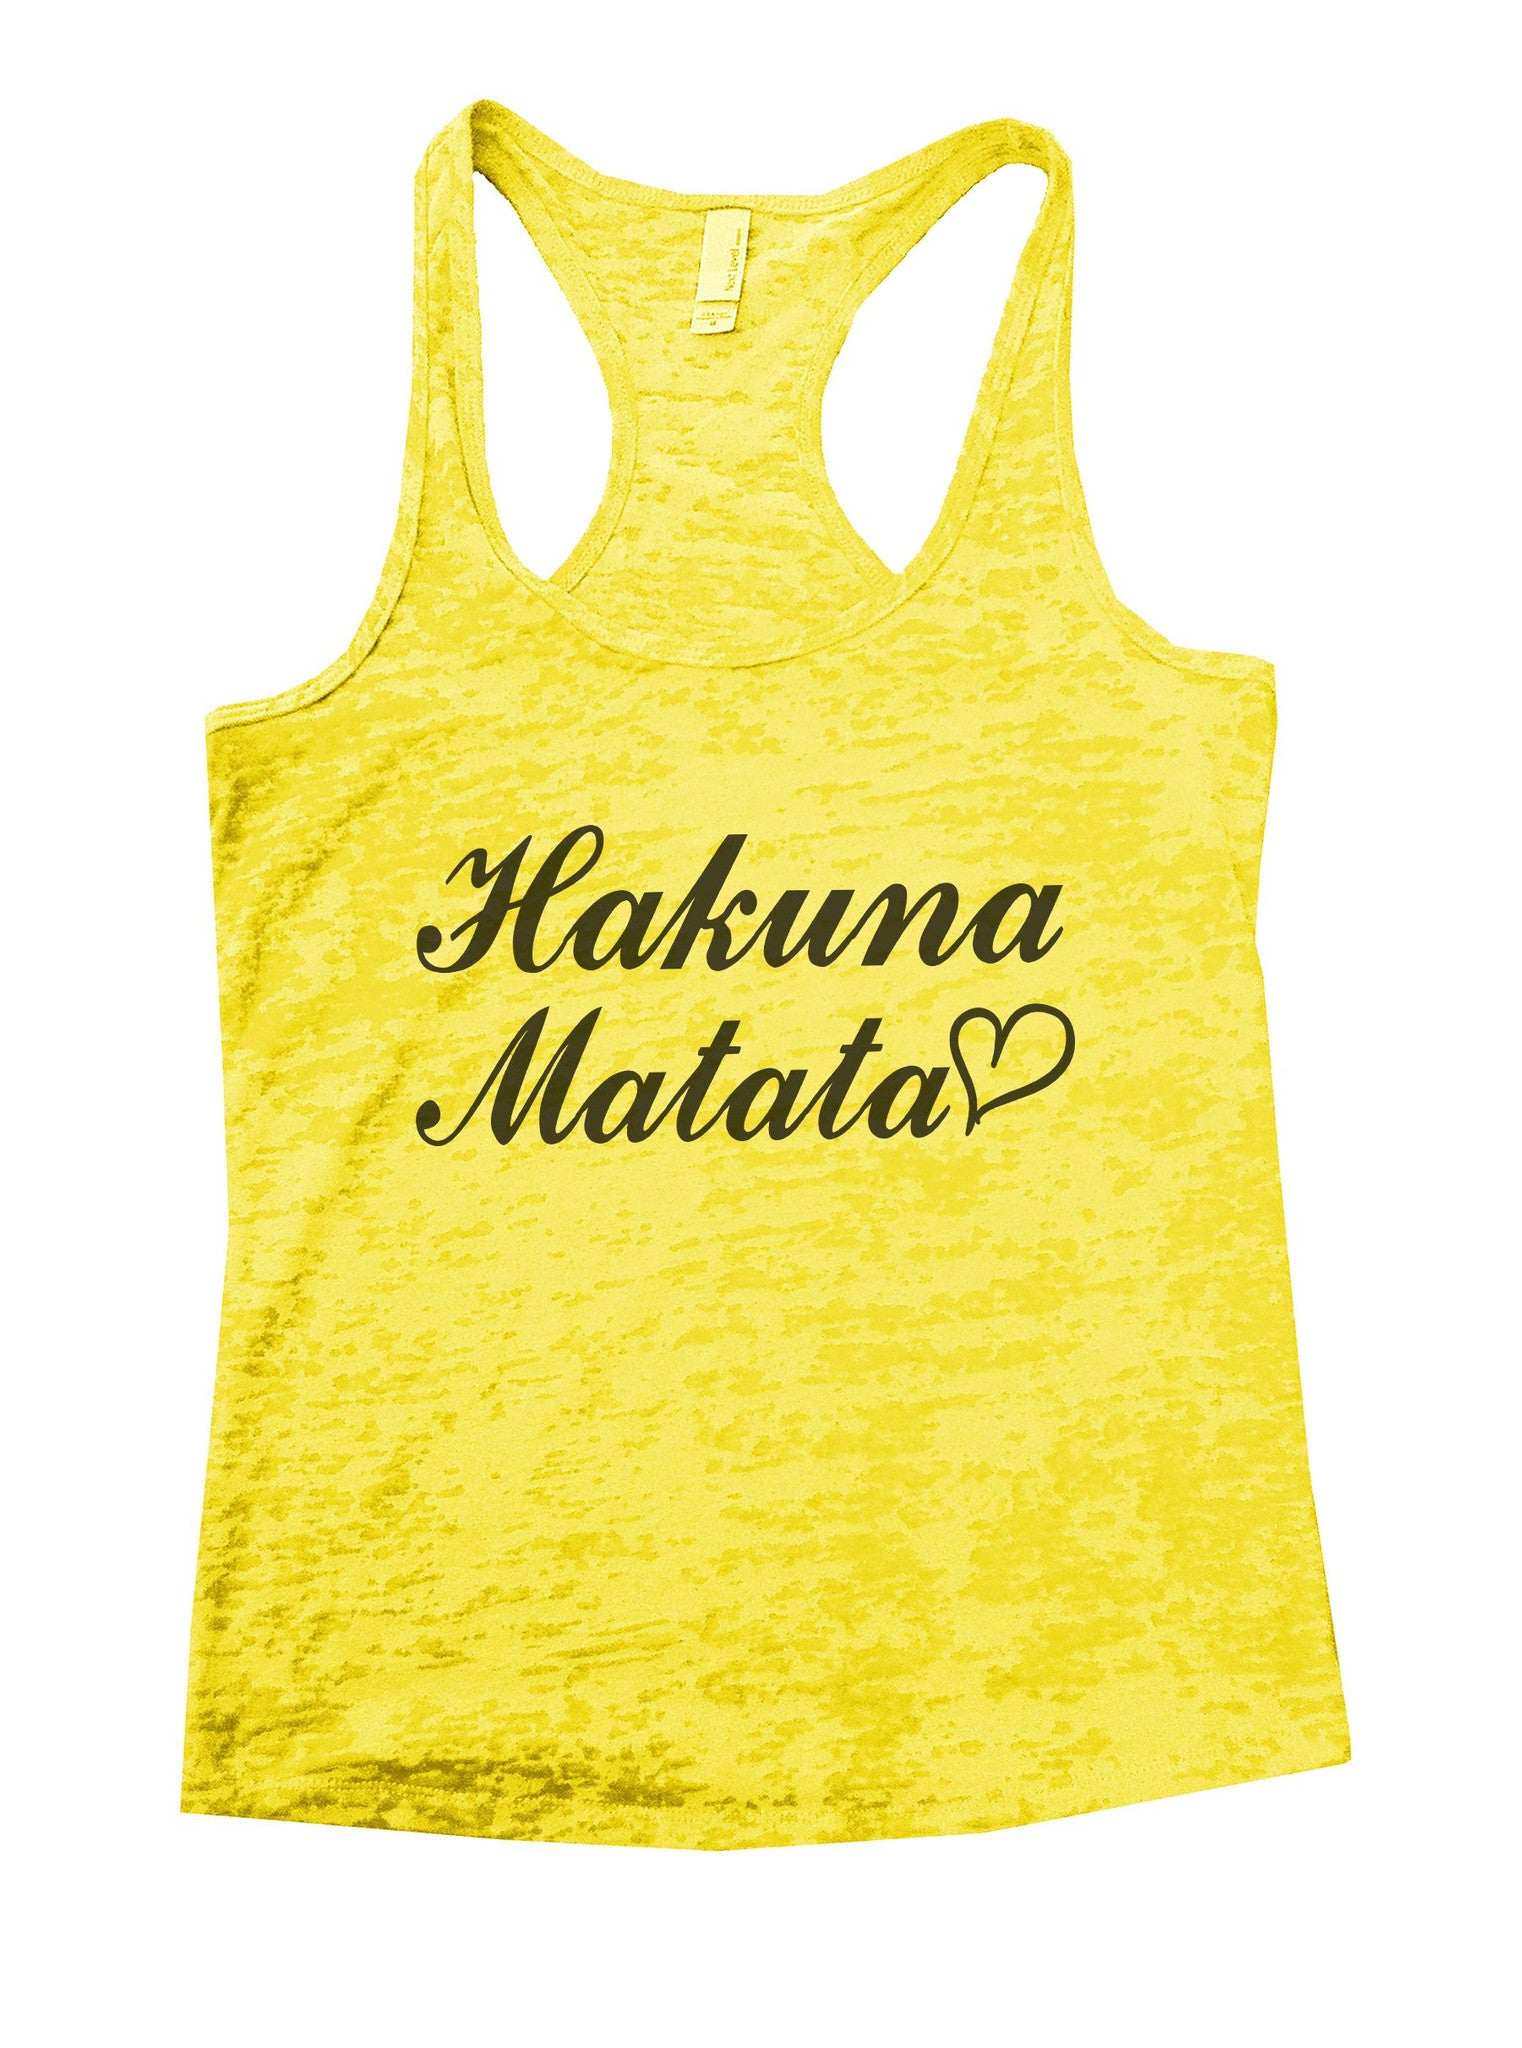 Hakuna Matata Burnout Tank Top By BurnoutTankTops.com - 937 - Funny Shirts Tank Tops Burnouts and Triblends  - 1